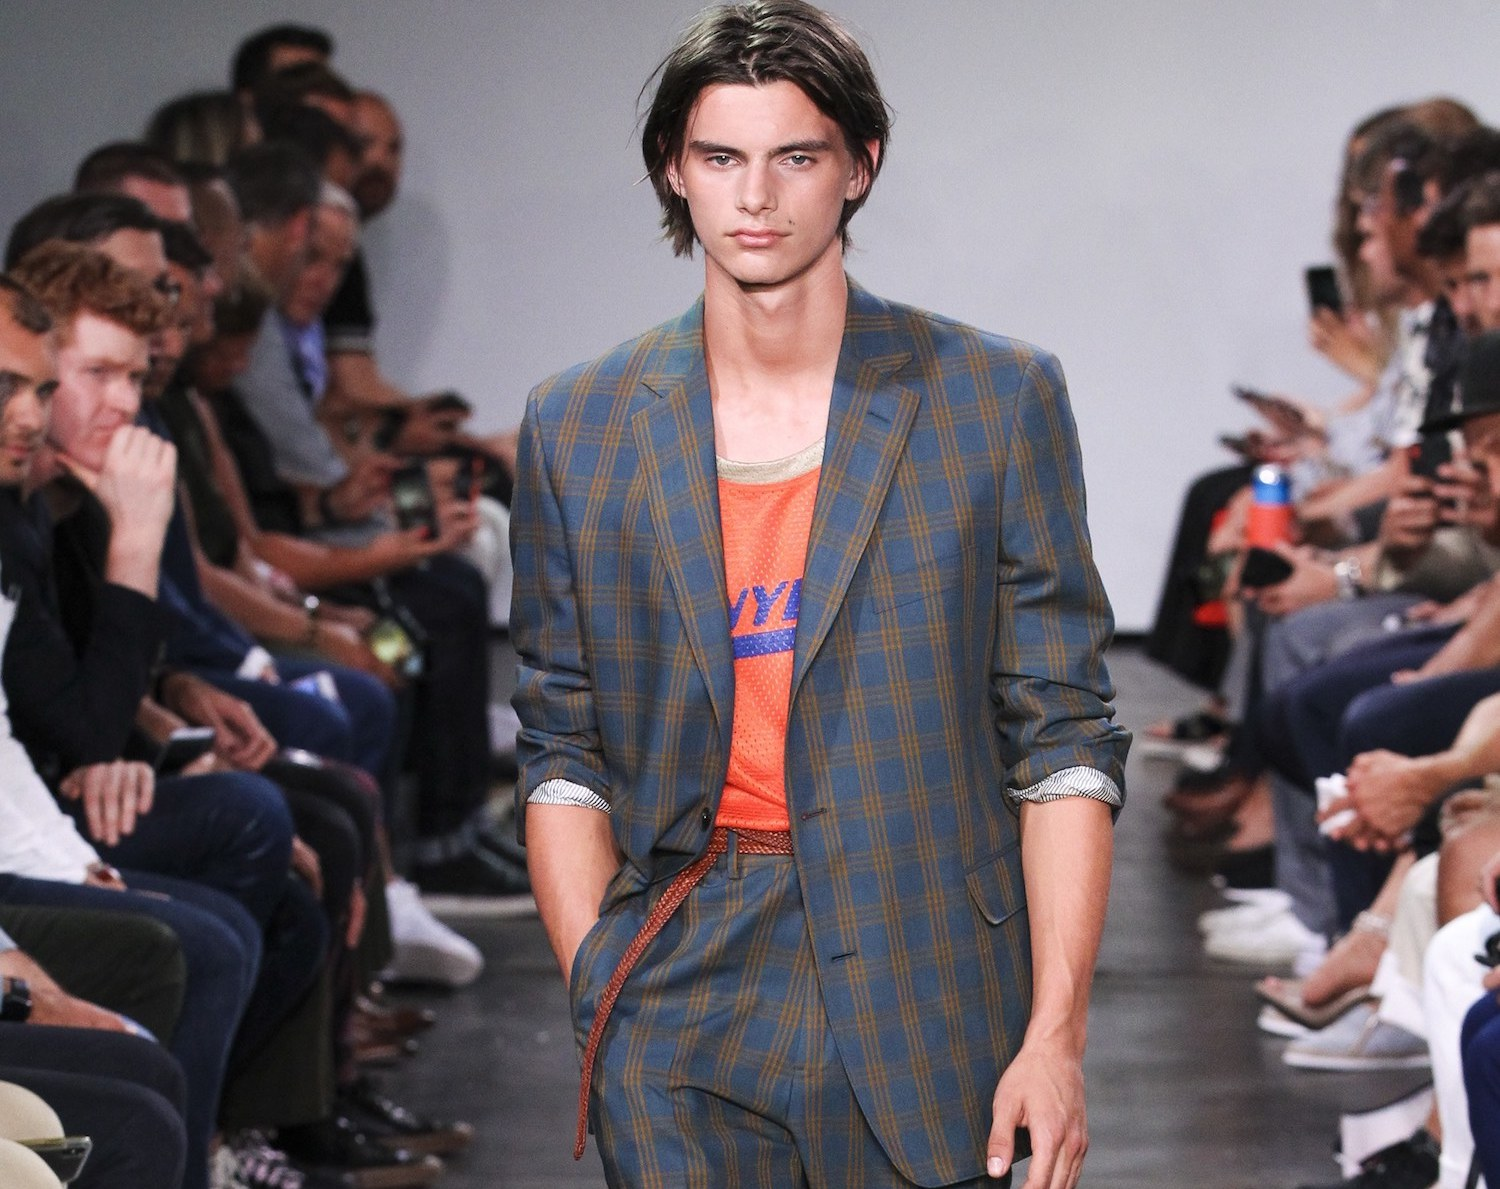 NYFWM: Todd Snyder Spring/Summer 2019 Collection